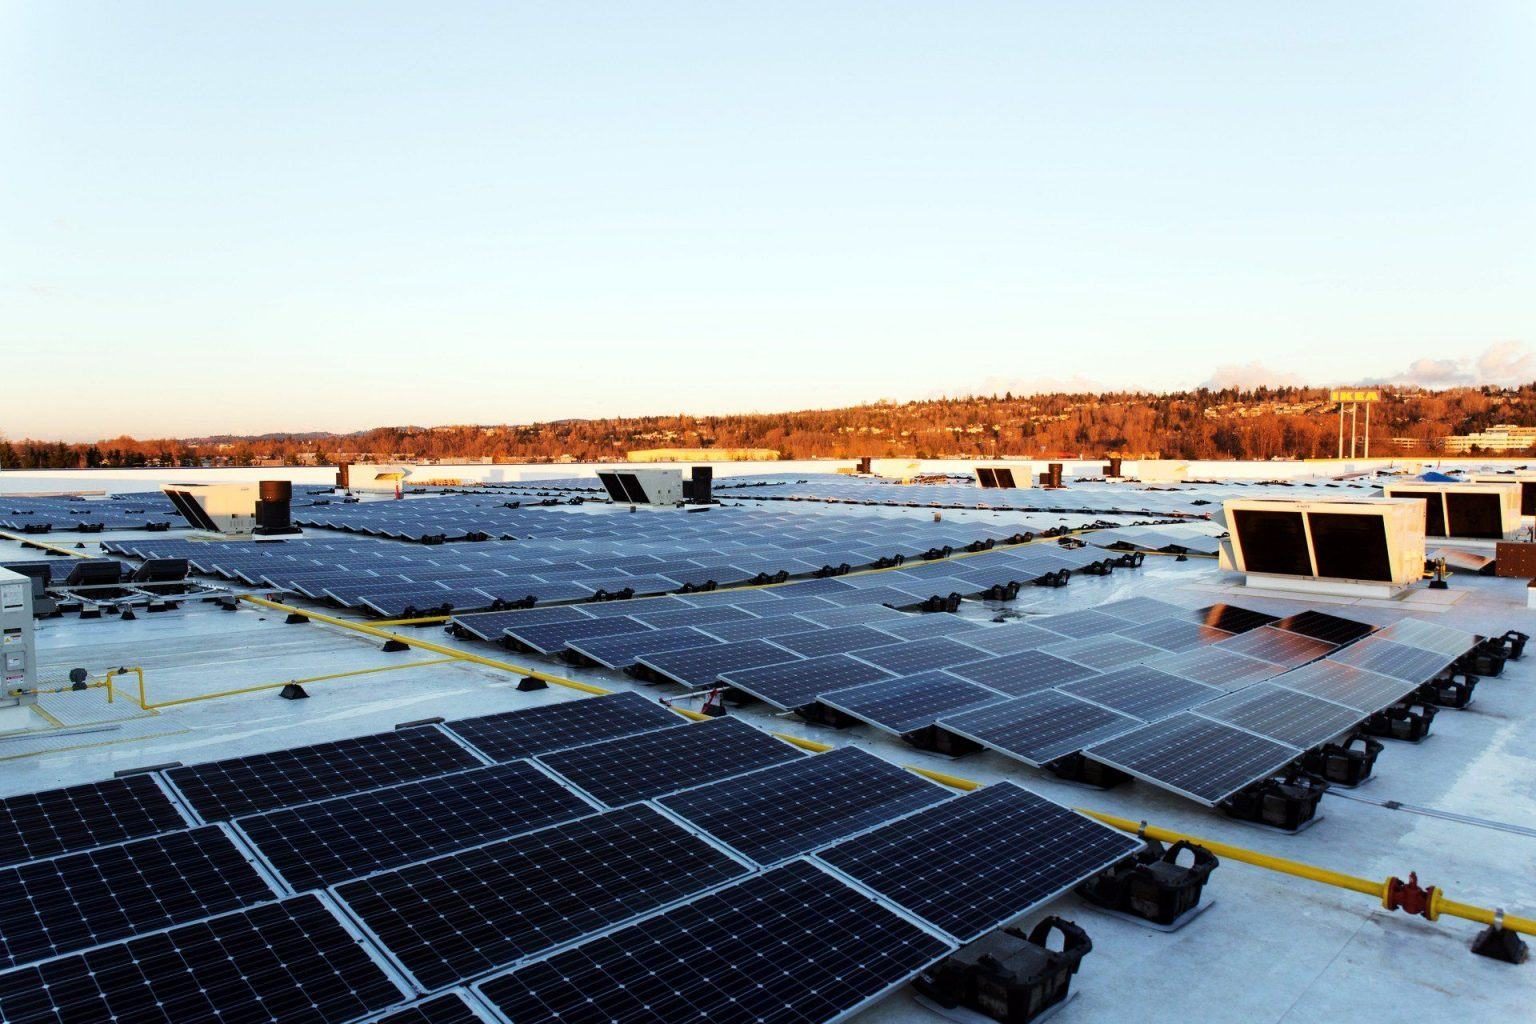 A photovoltaic system on the top of an IKEA store in Renton, Washington, delivering 1.2 MW